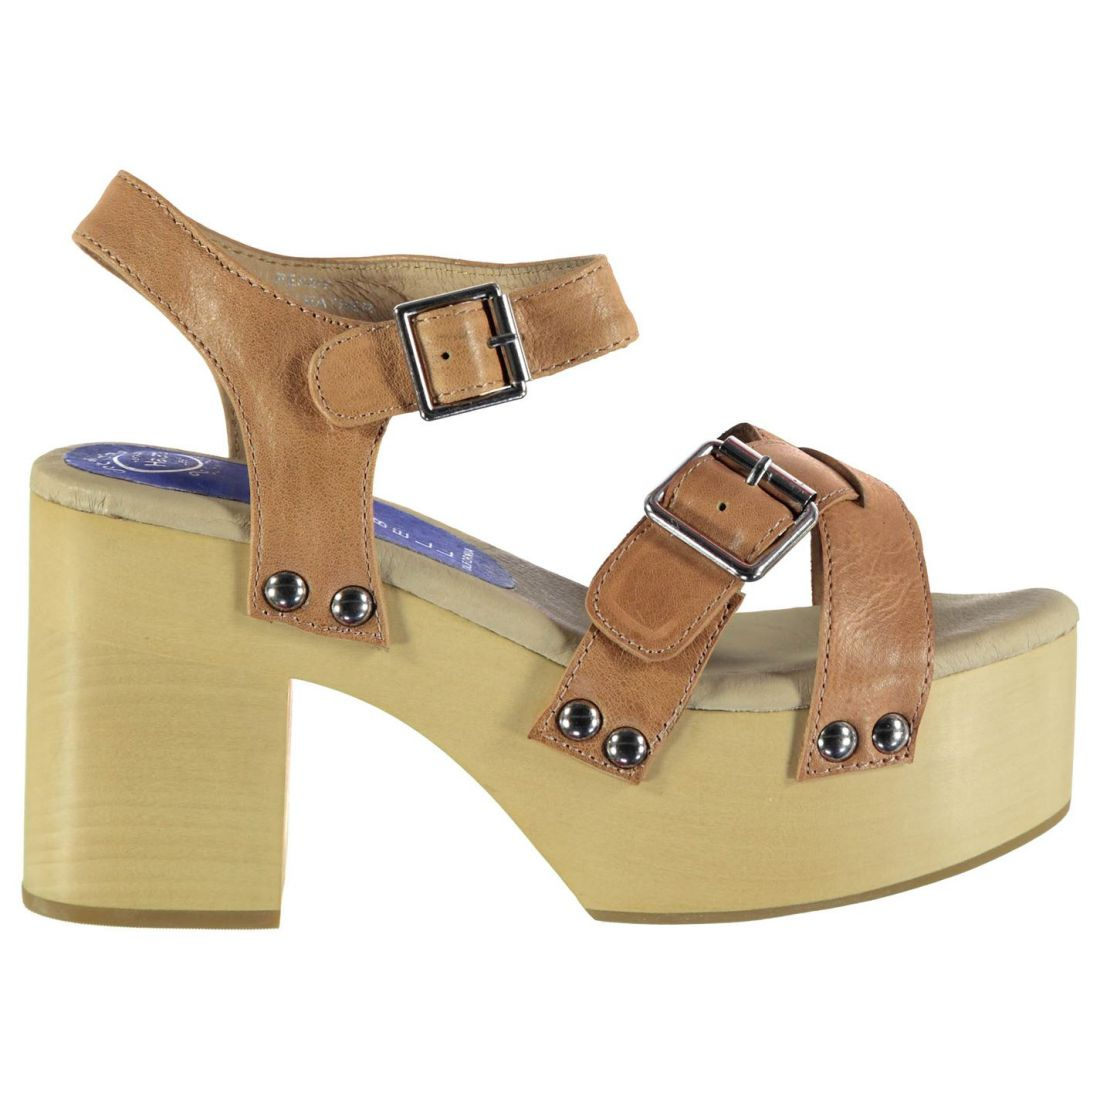 e3ddb646a58 Image is loading Jeffrey-Campbell-Ladies-Peasy-Platform-Heeled-Shoes-Sandals -